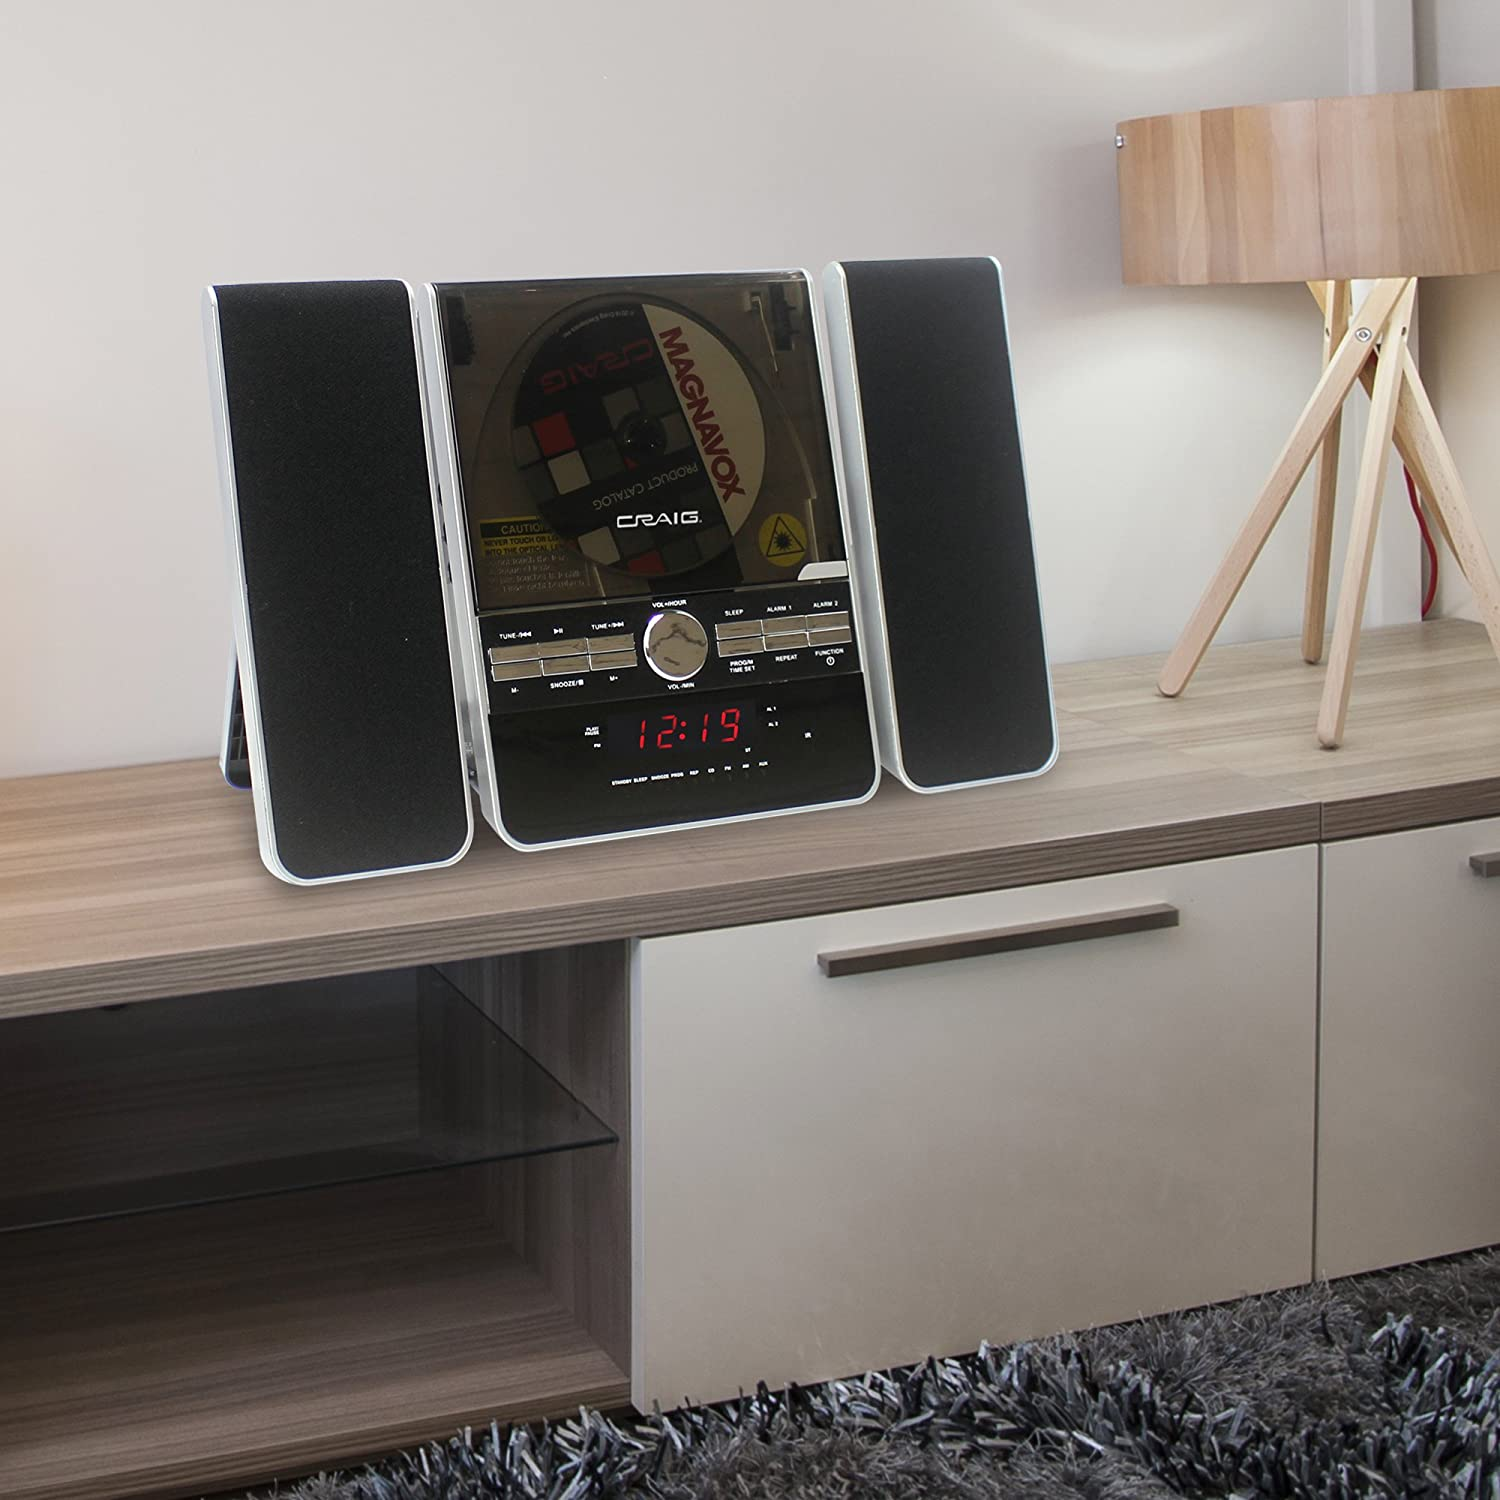 Craig Vertical CD Shelf System with AM//FM Stereo Radio and Dual Alarm Clock,